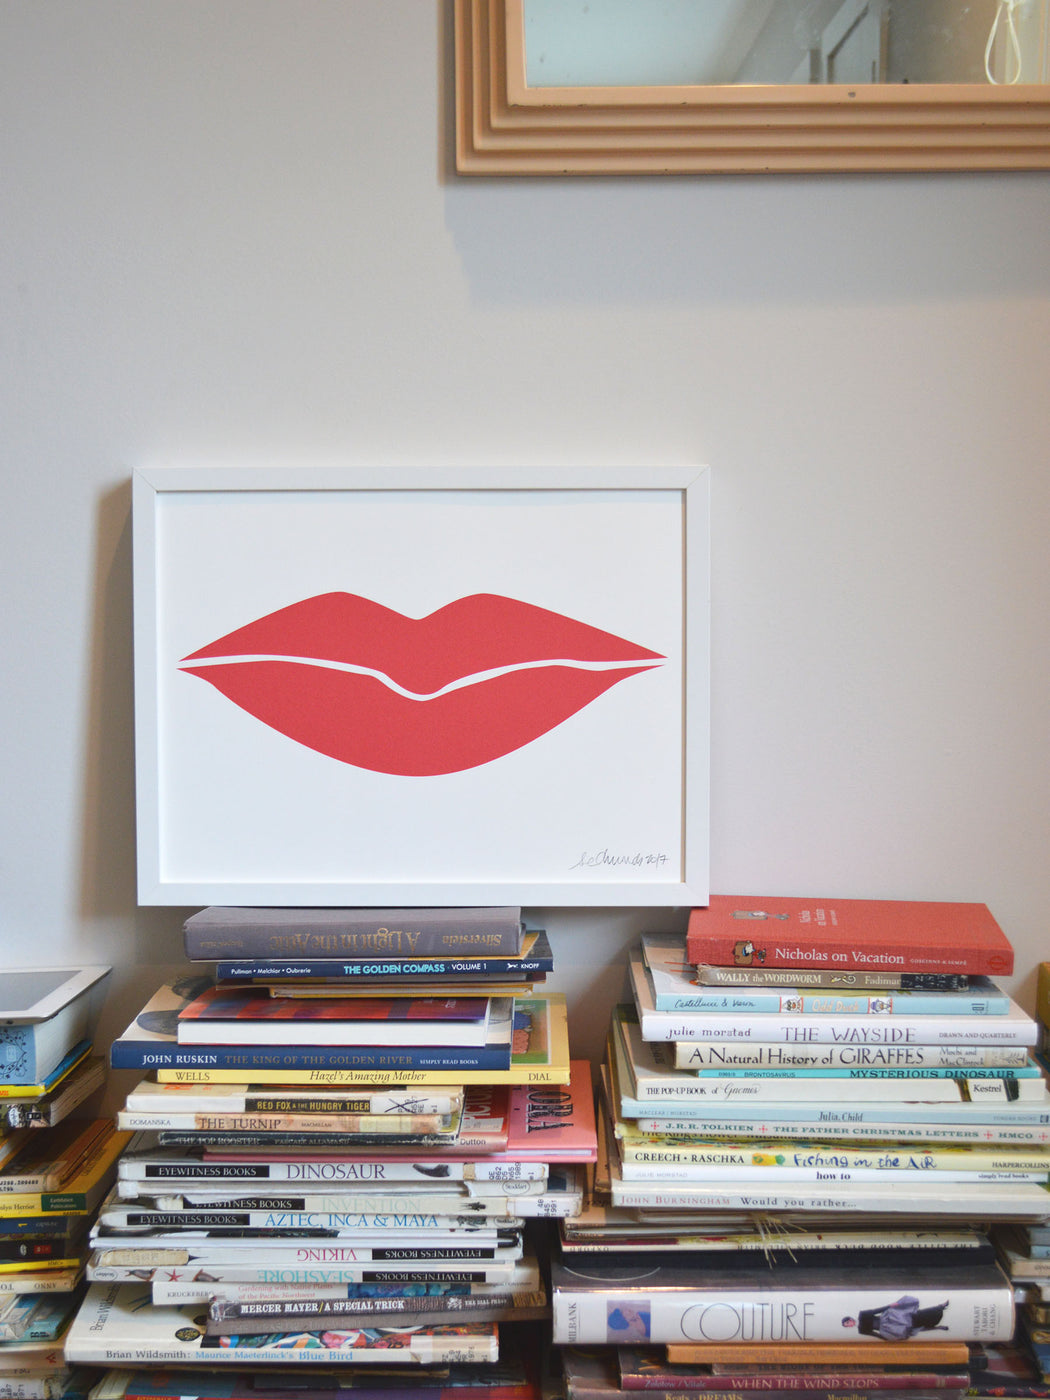 Banquet Workshop's lip print sitting on a stack of books in a home